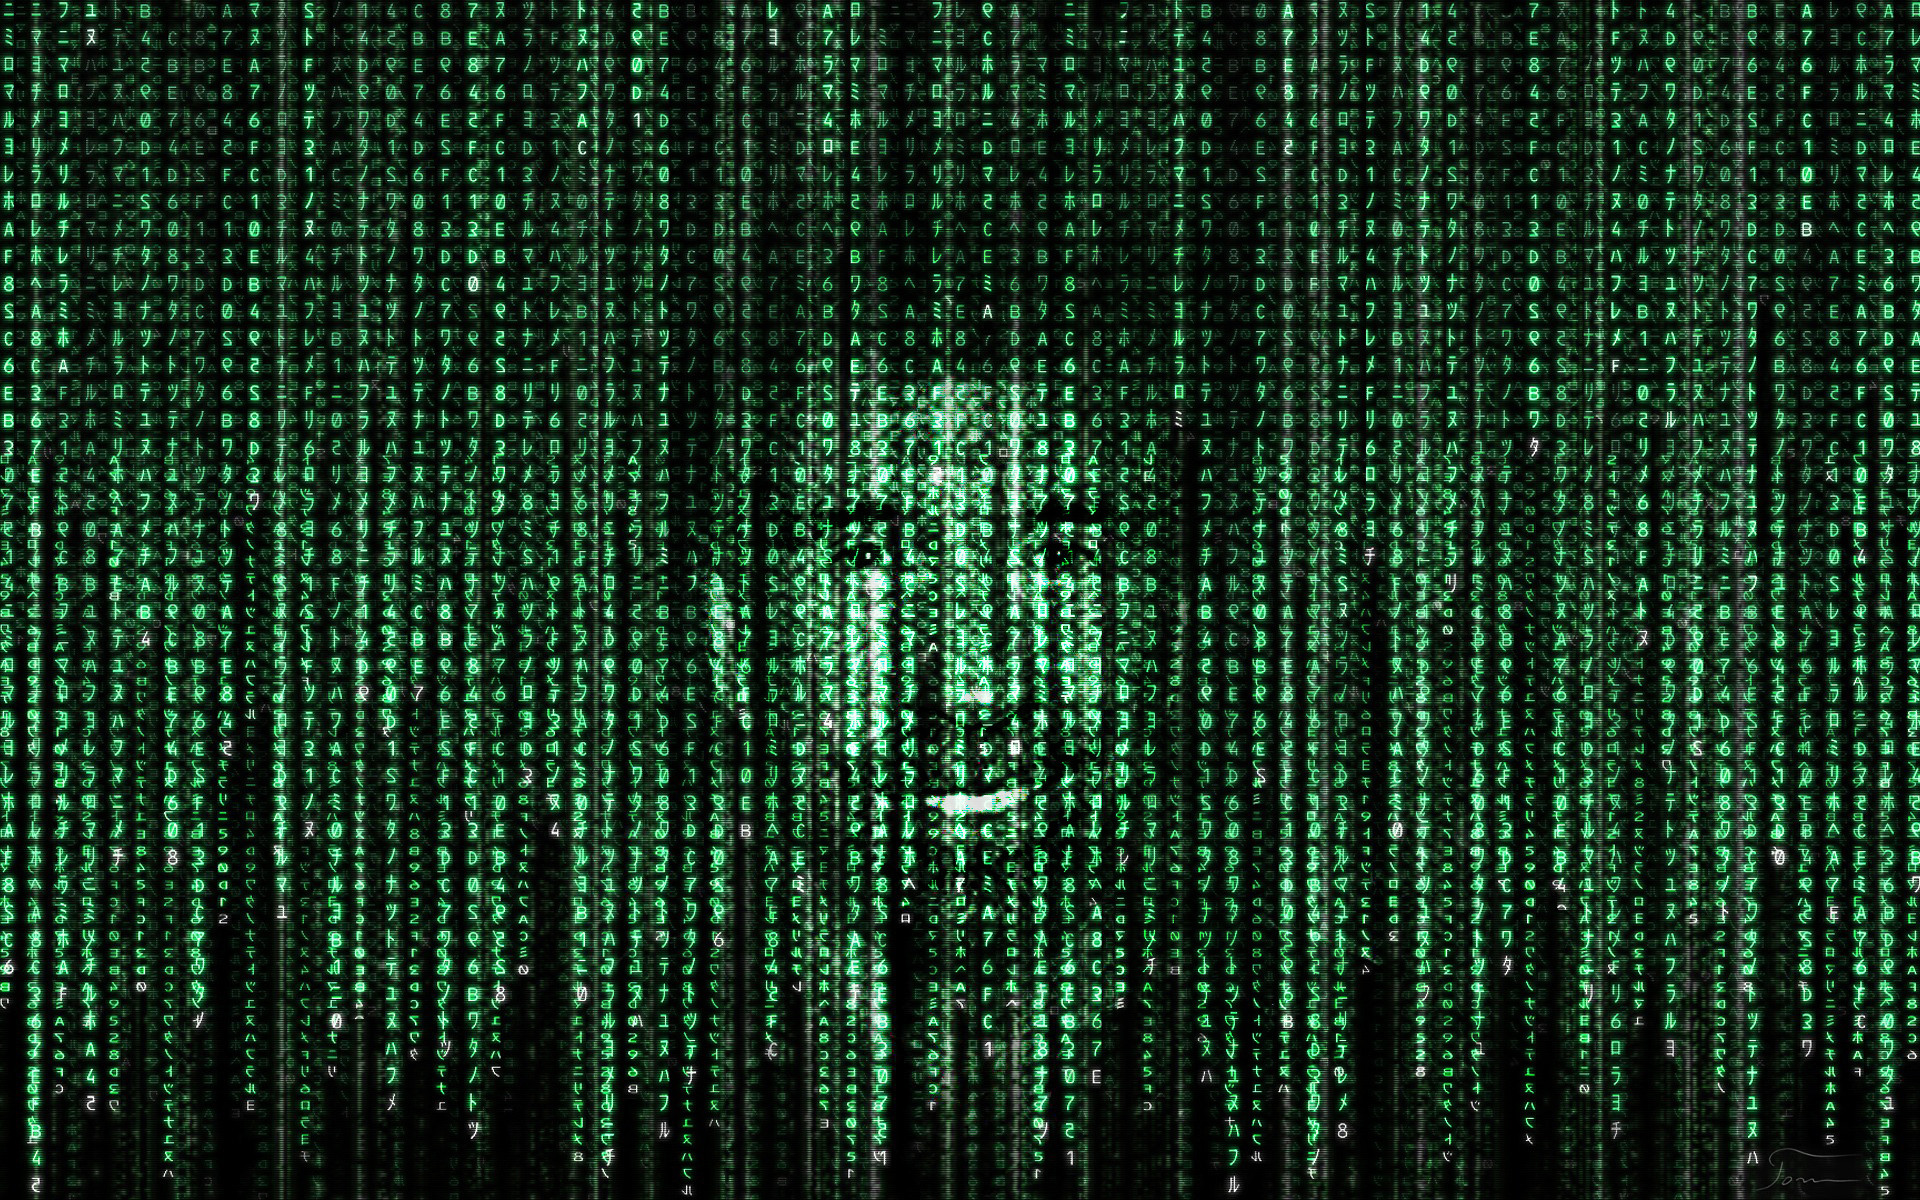 1920x1200 ... Chuck Norris in matrix code by tomhotovy